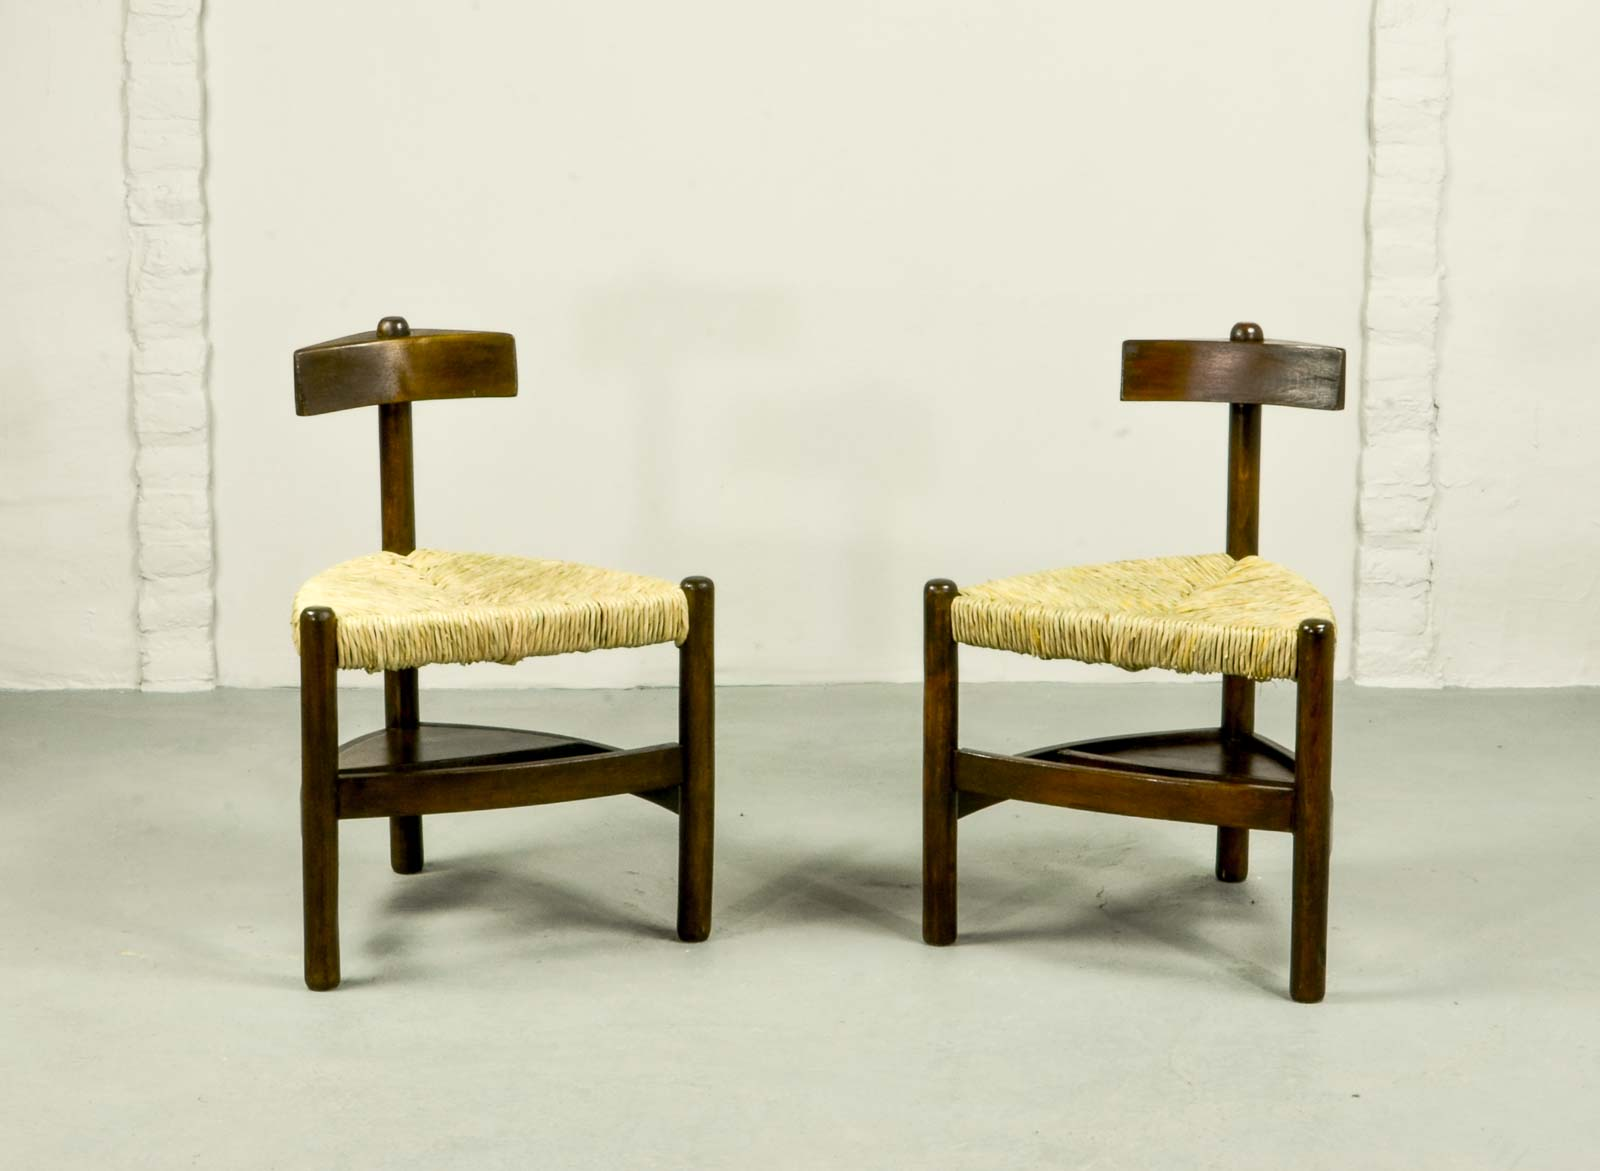 Rare Pair of Oak Tree and Rush Chairs in Style of Charlotte Perriand for Meribel & Rare Pair of Oak Tree and Rush Chairs in Style of Charlotte Perriand ...